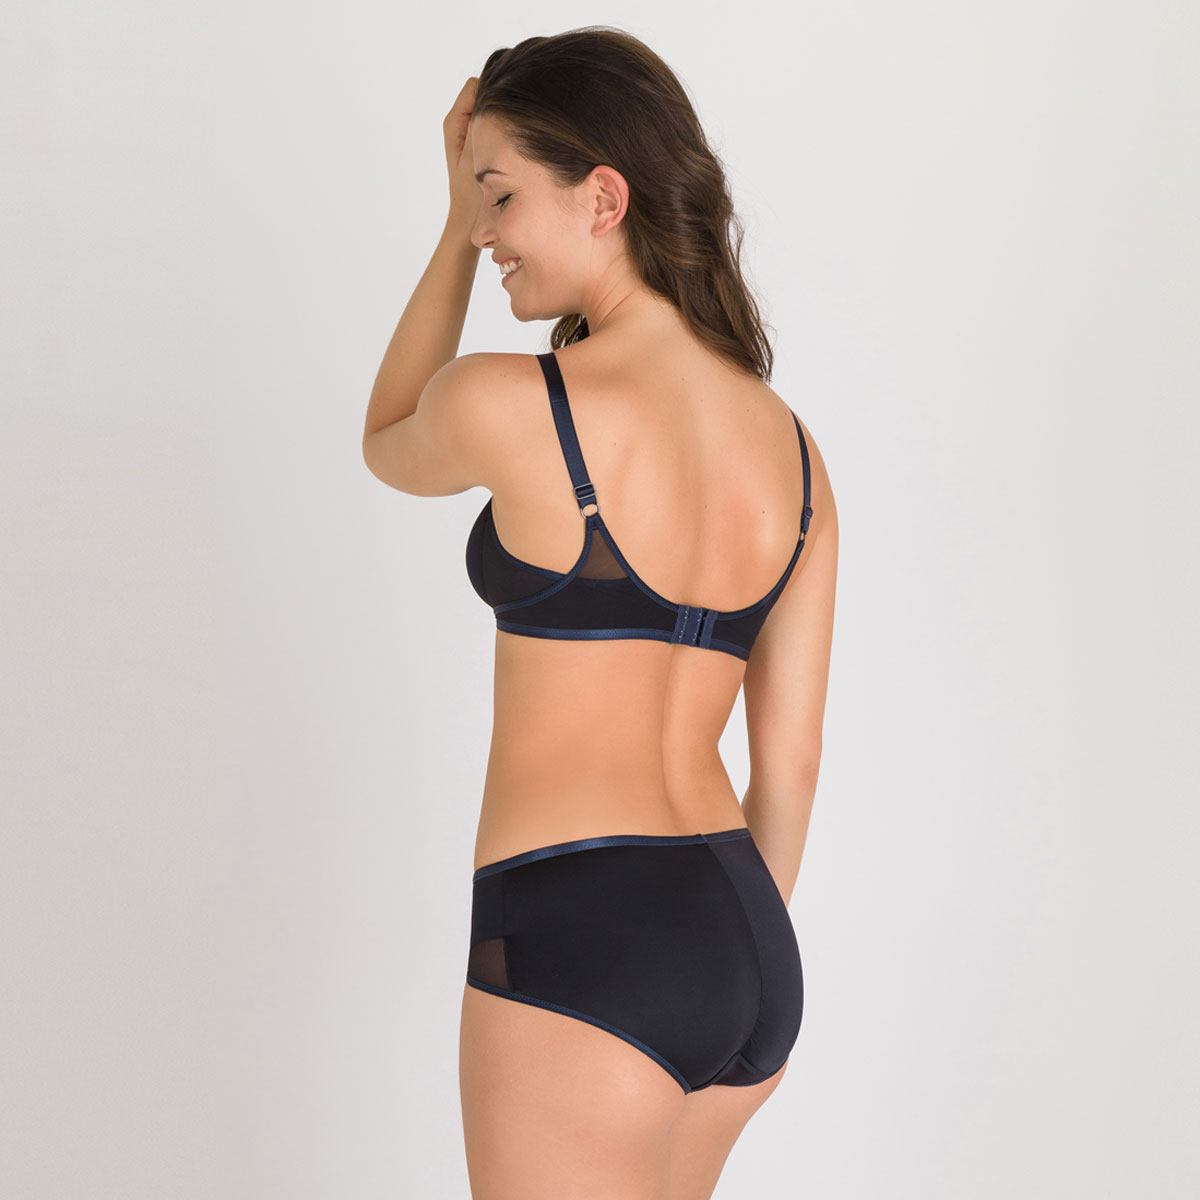 Non-wired Bra in Black - Ideal Beauty-PLAYTEX